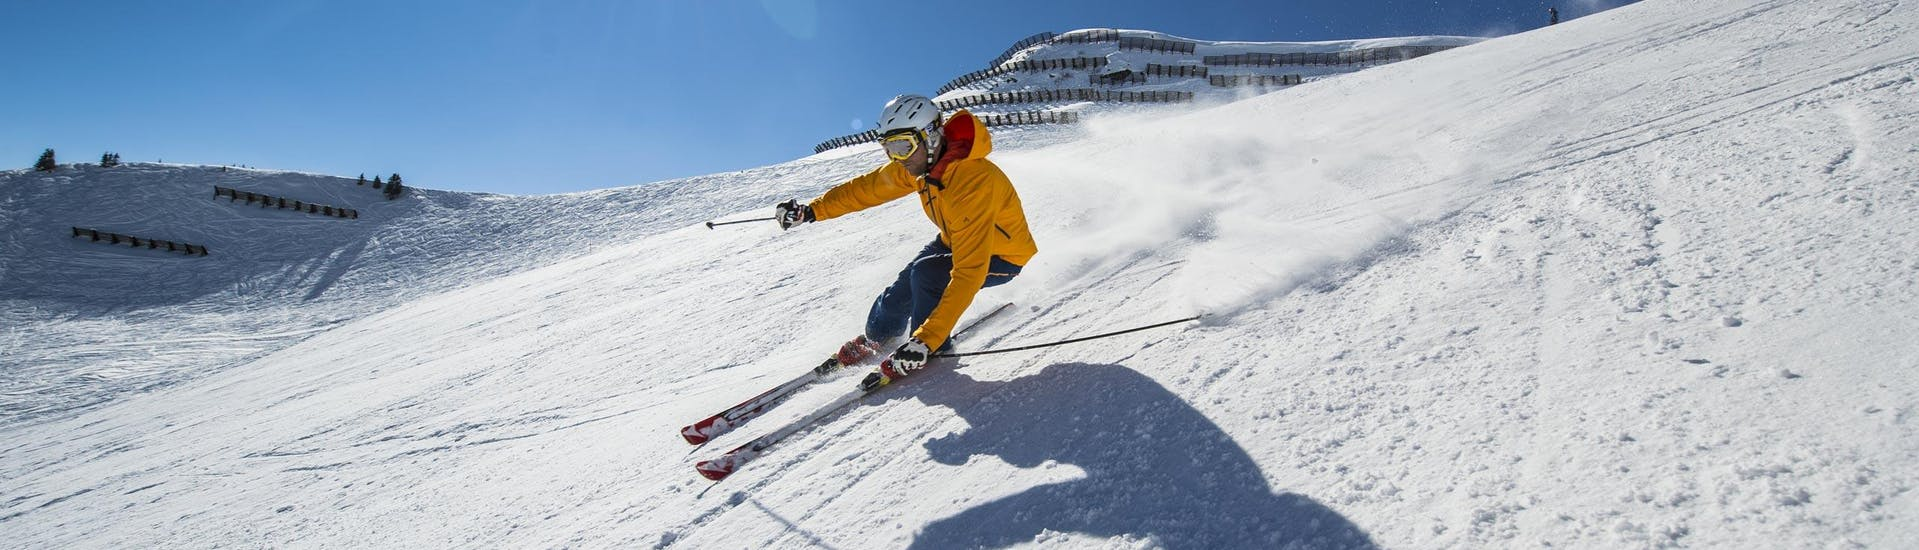 Ski Racing Private - All Levels: A skier is skiing down a sunny ski slope while participating in an activity offered by Ski School Russbach.